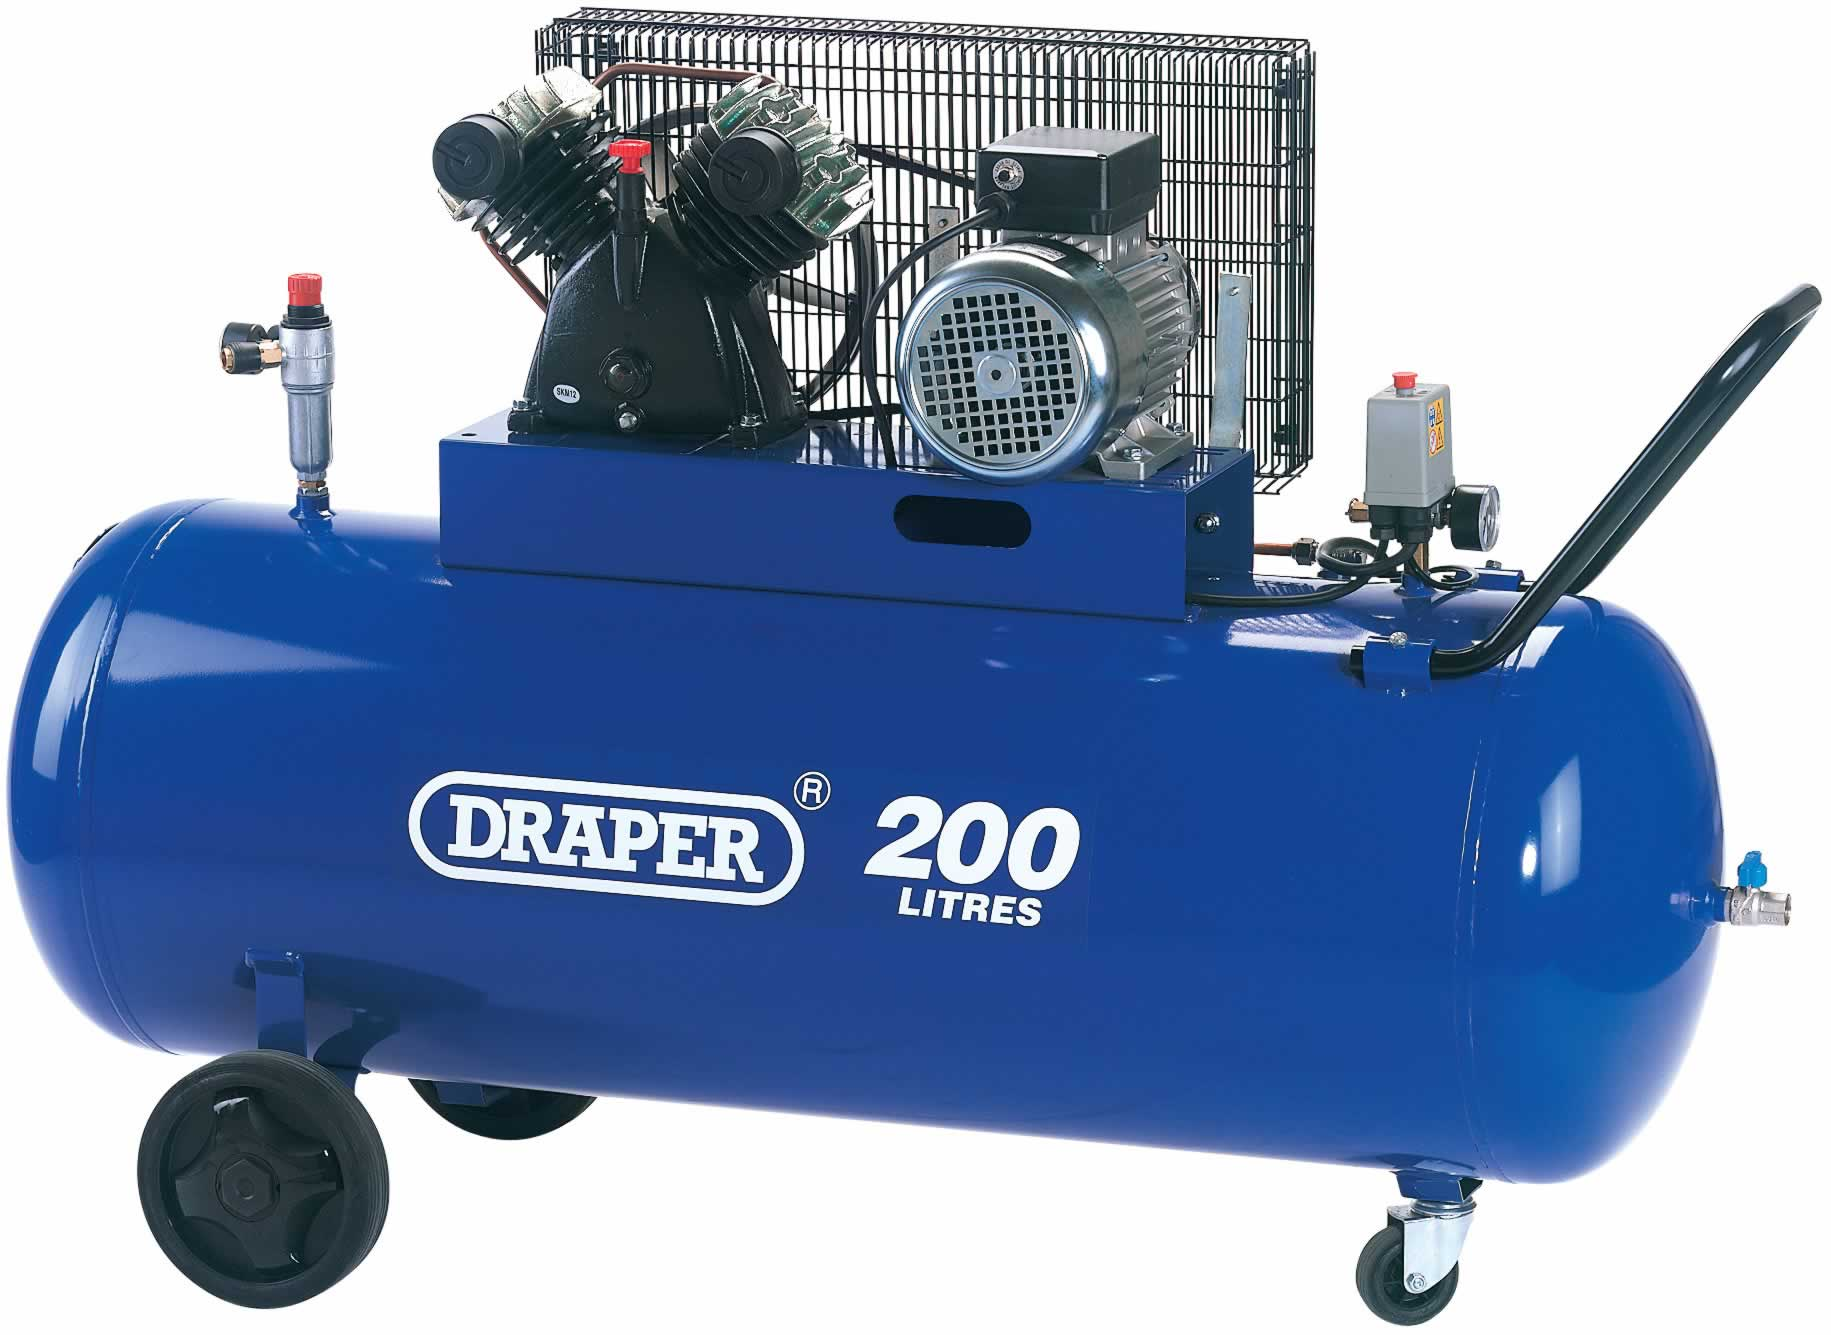 200L 230V V-TWIN BELT-DRIVEN AIR COMPRESSOR